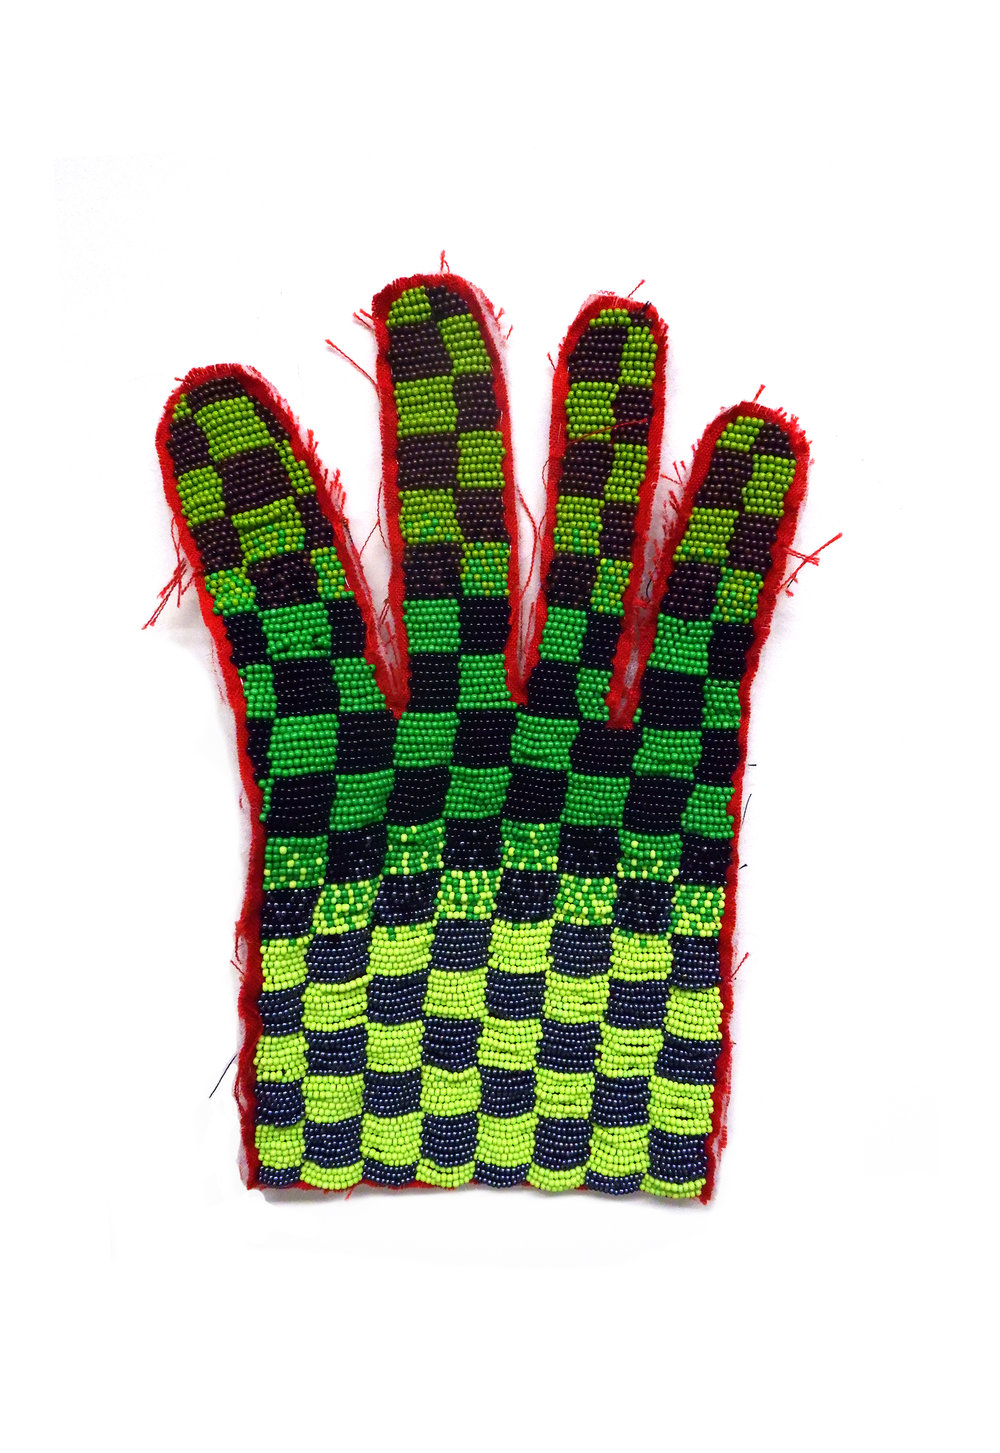 Ranchers Glove ( Work in progress)  Cotton, seed beads  *Actual size, 2018